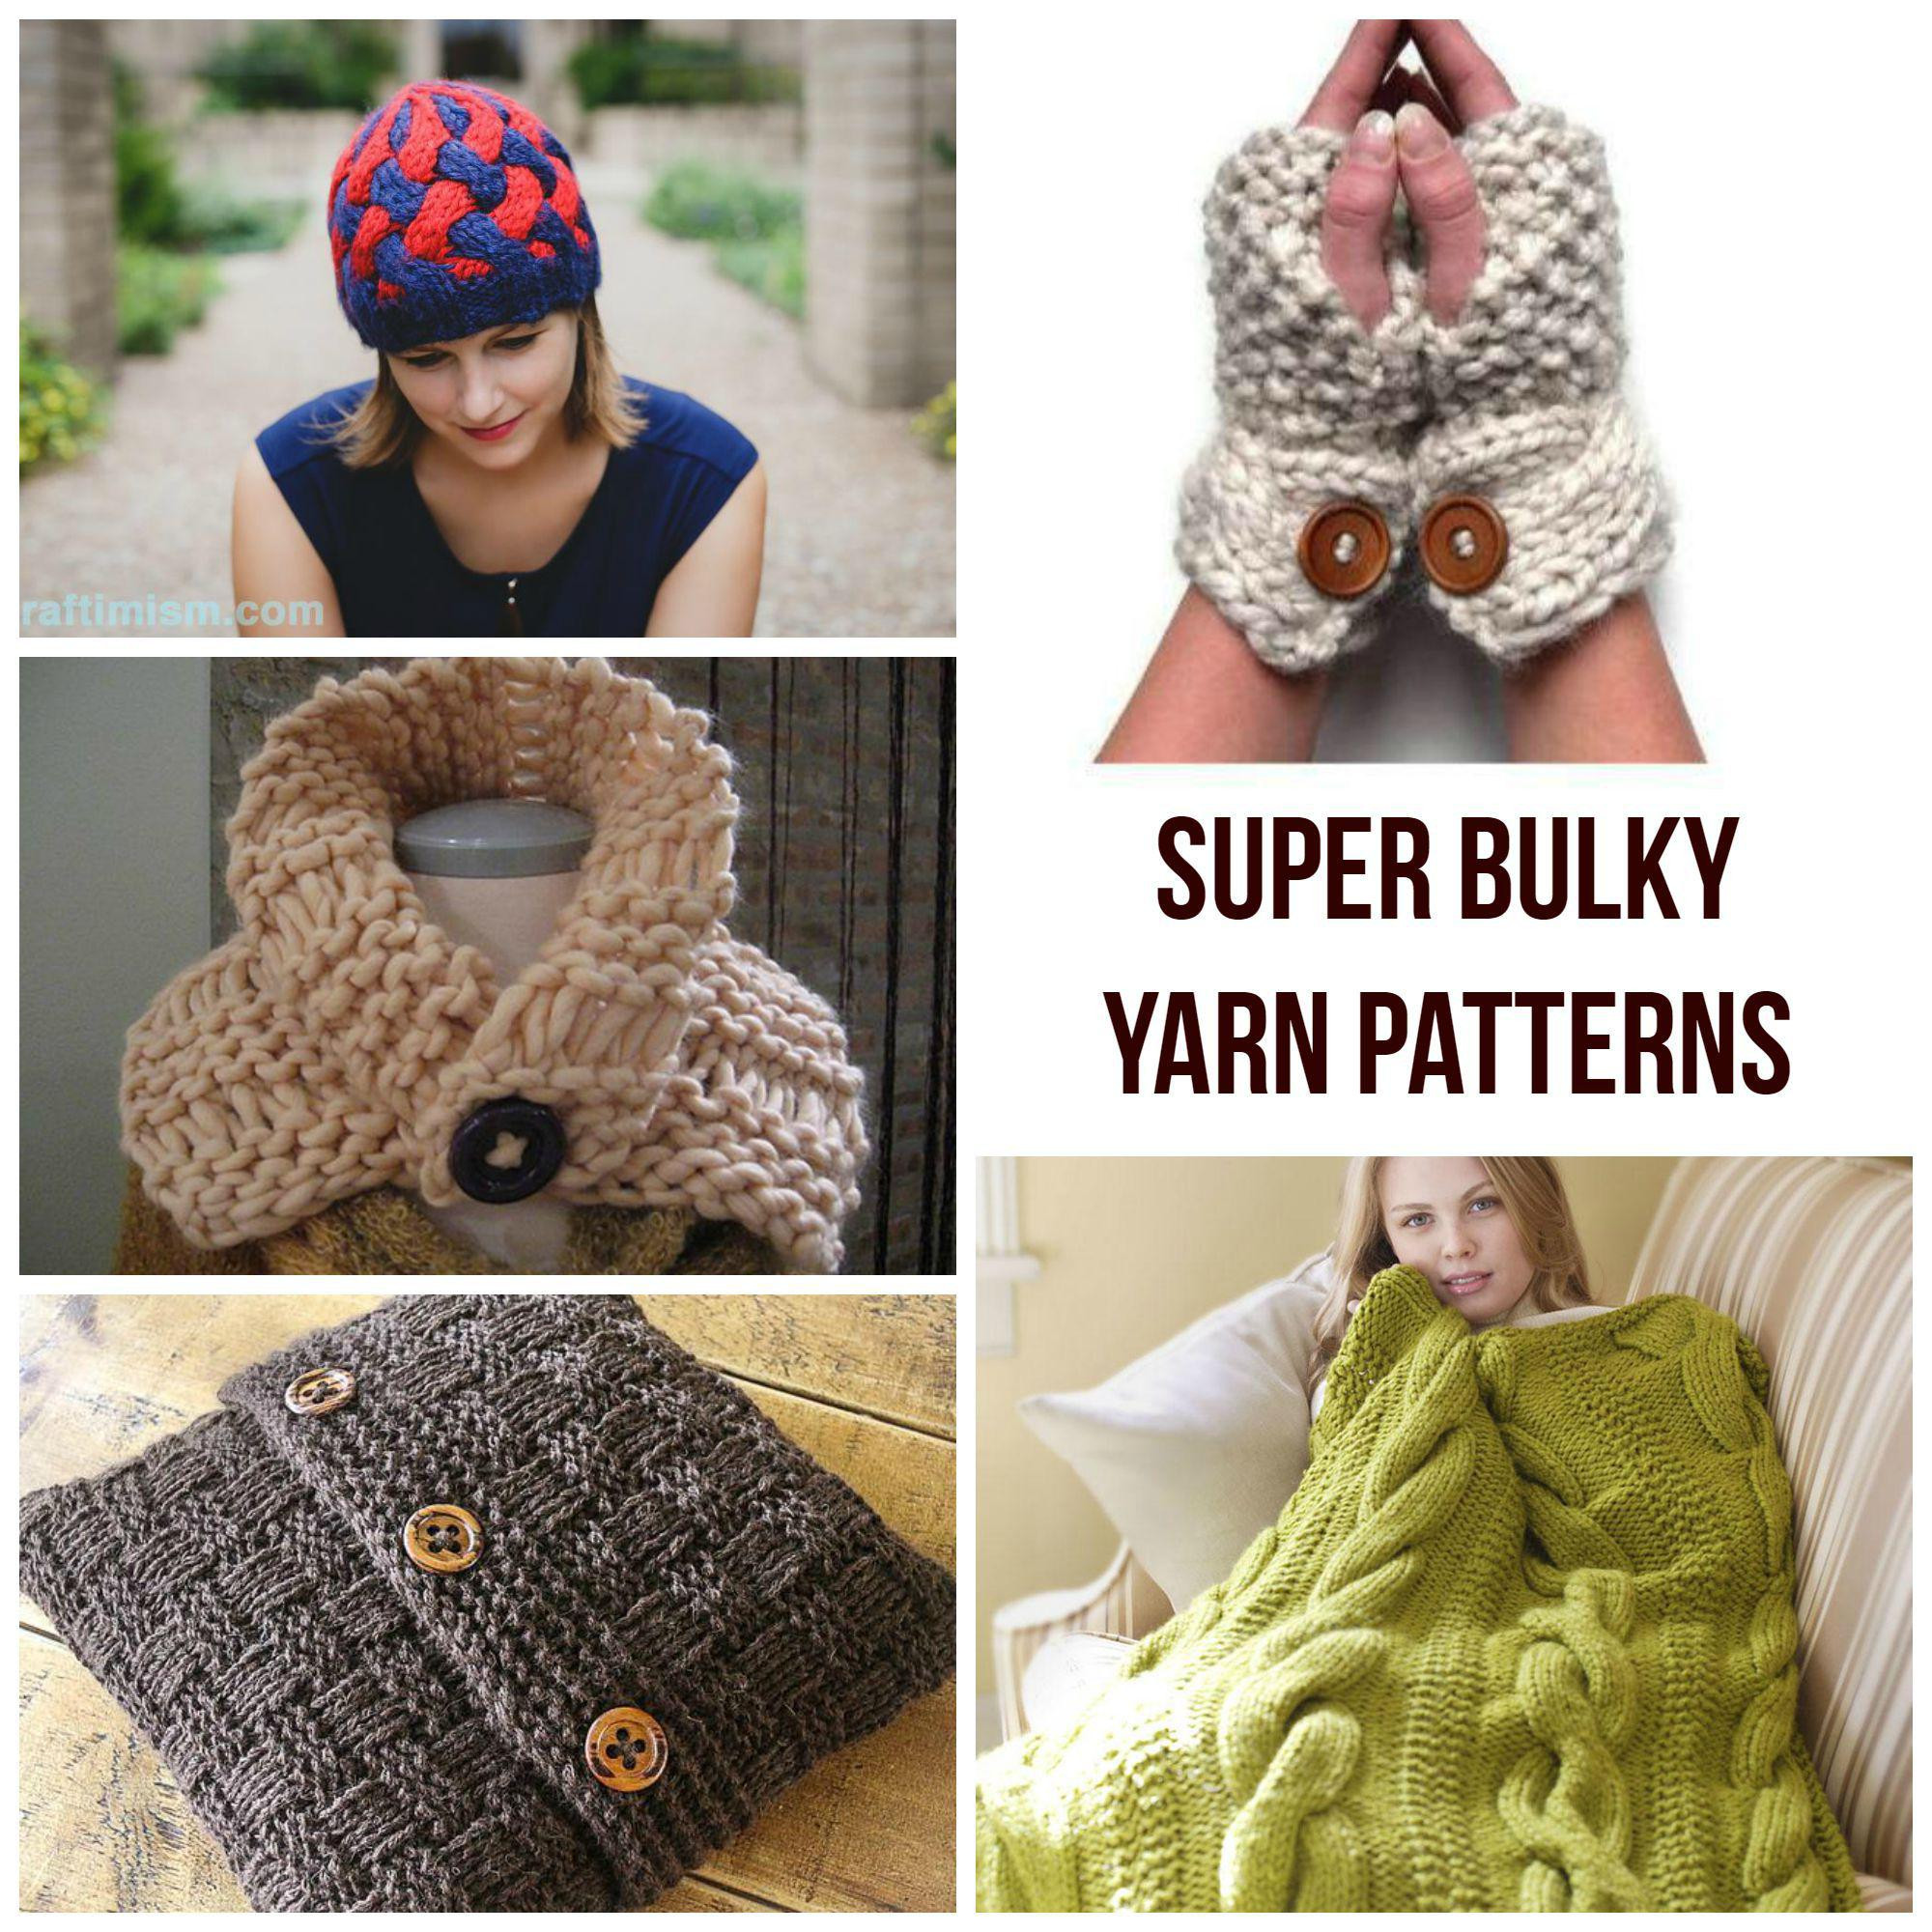 6 Super Bulky Yarn Inspirational Quick Knits Super Bulky Yarn Patterns Craftsy Of Gorgeous 50 Pics 6 Super Bulky Yarn